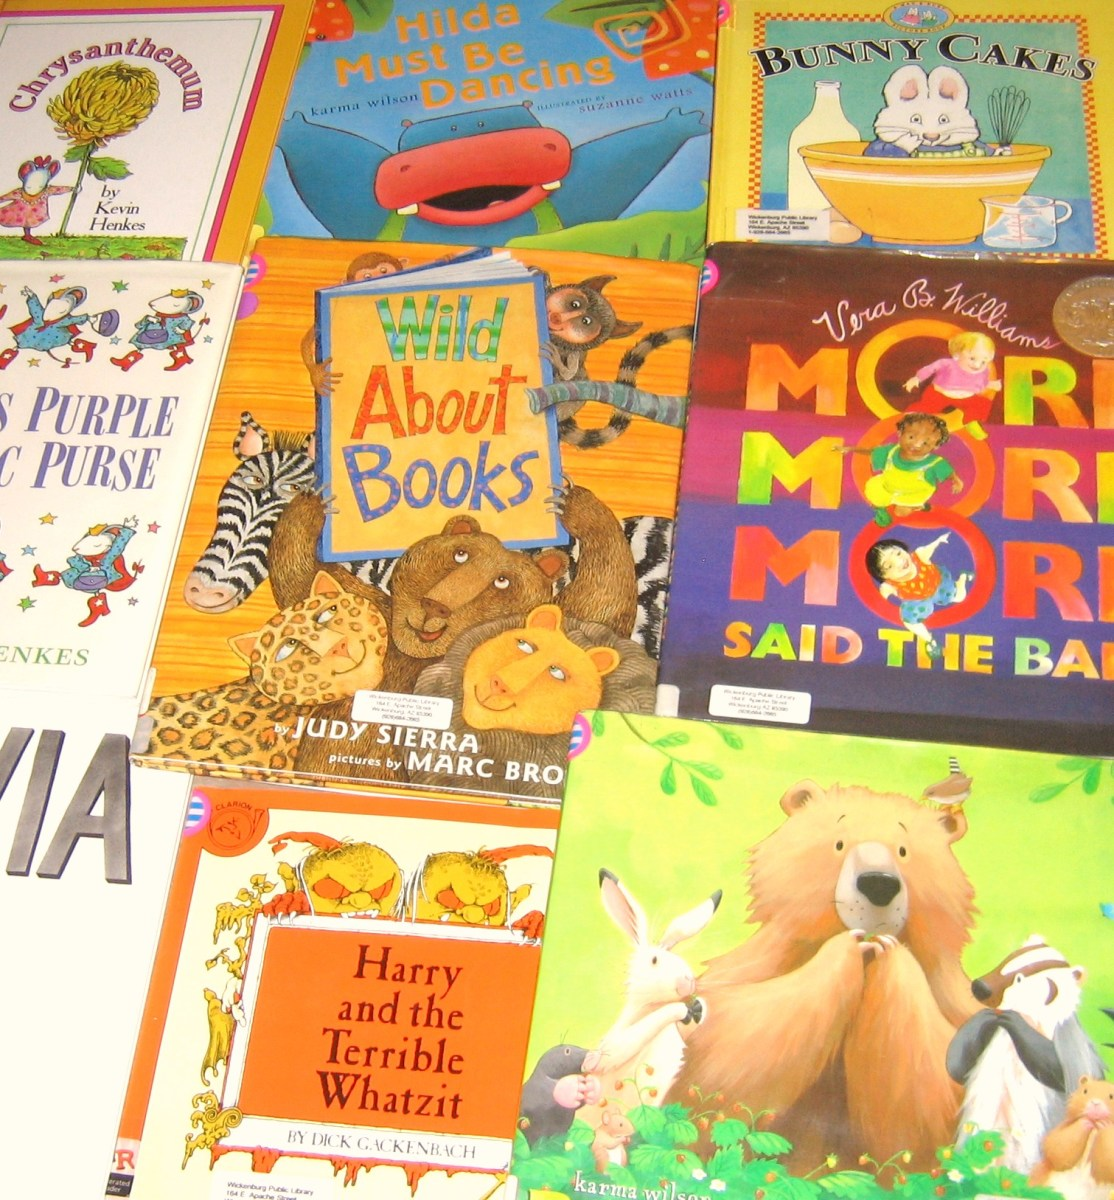 How to Find Topical Children's Books for Homeschool Lessons and Preschool Story Time